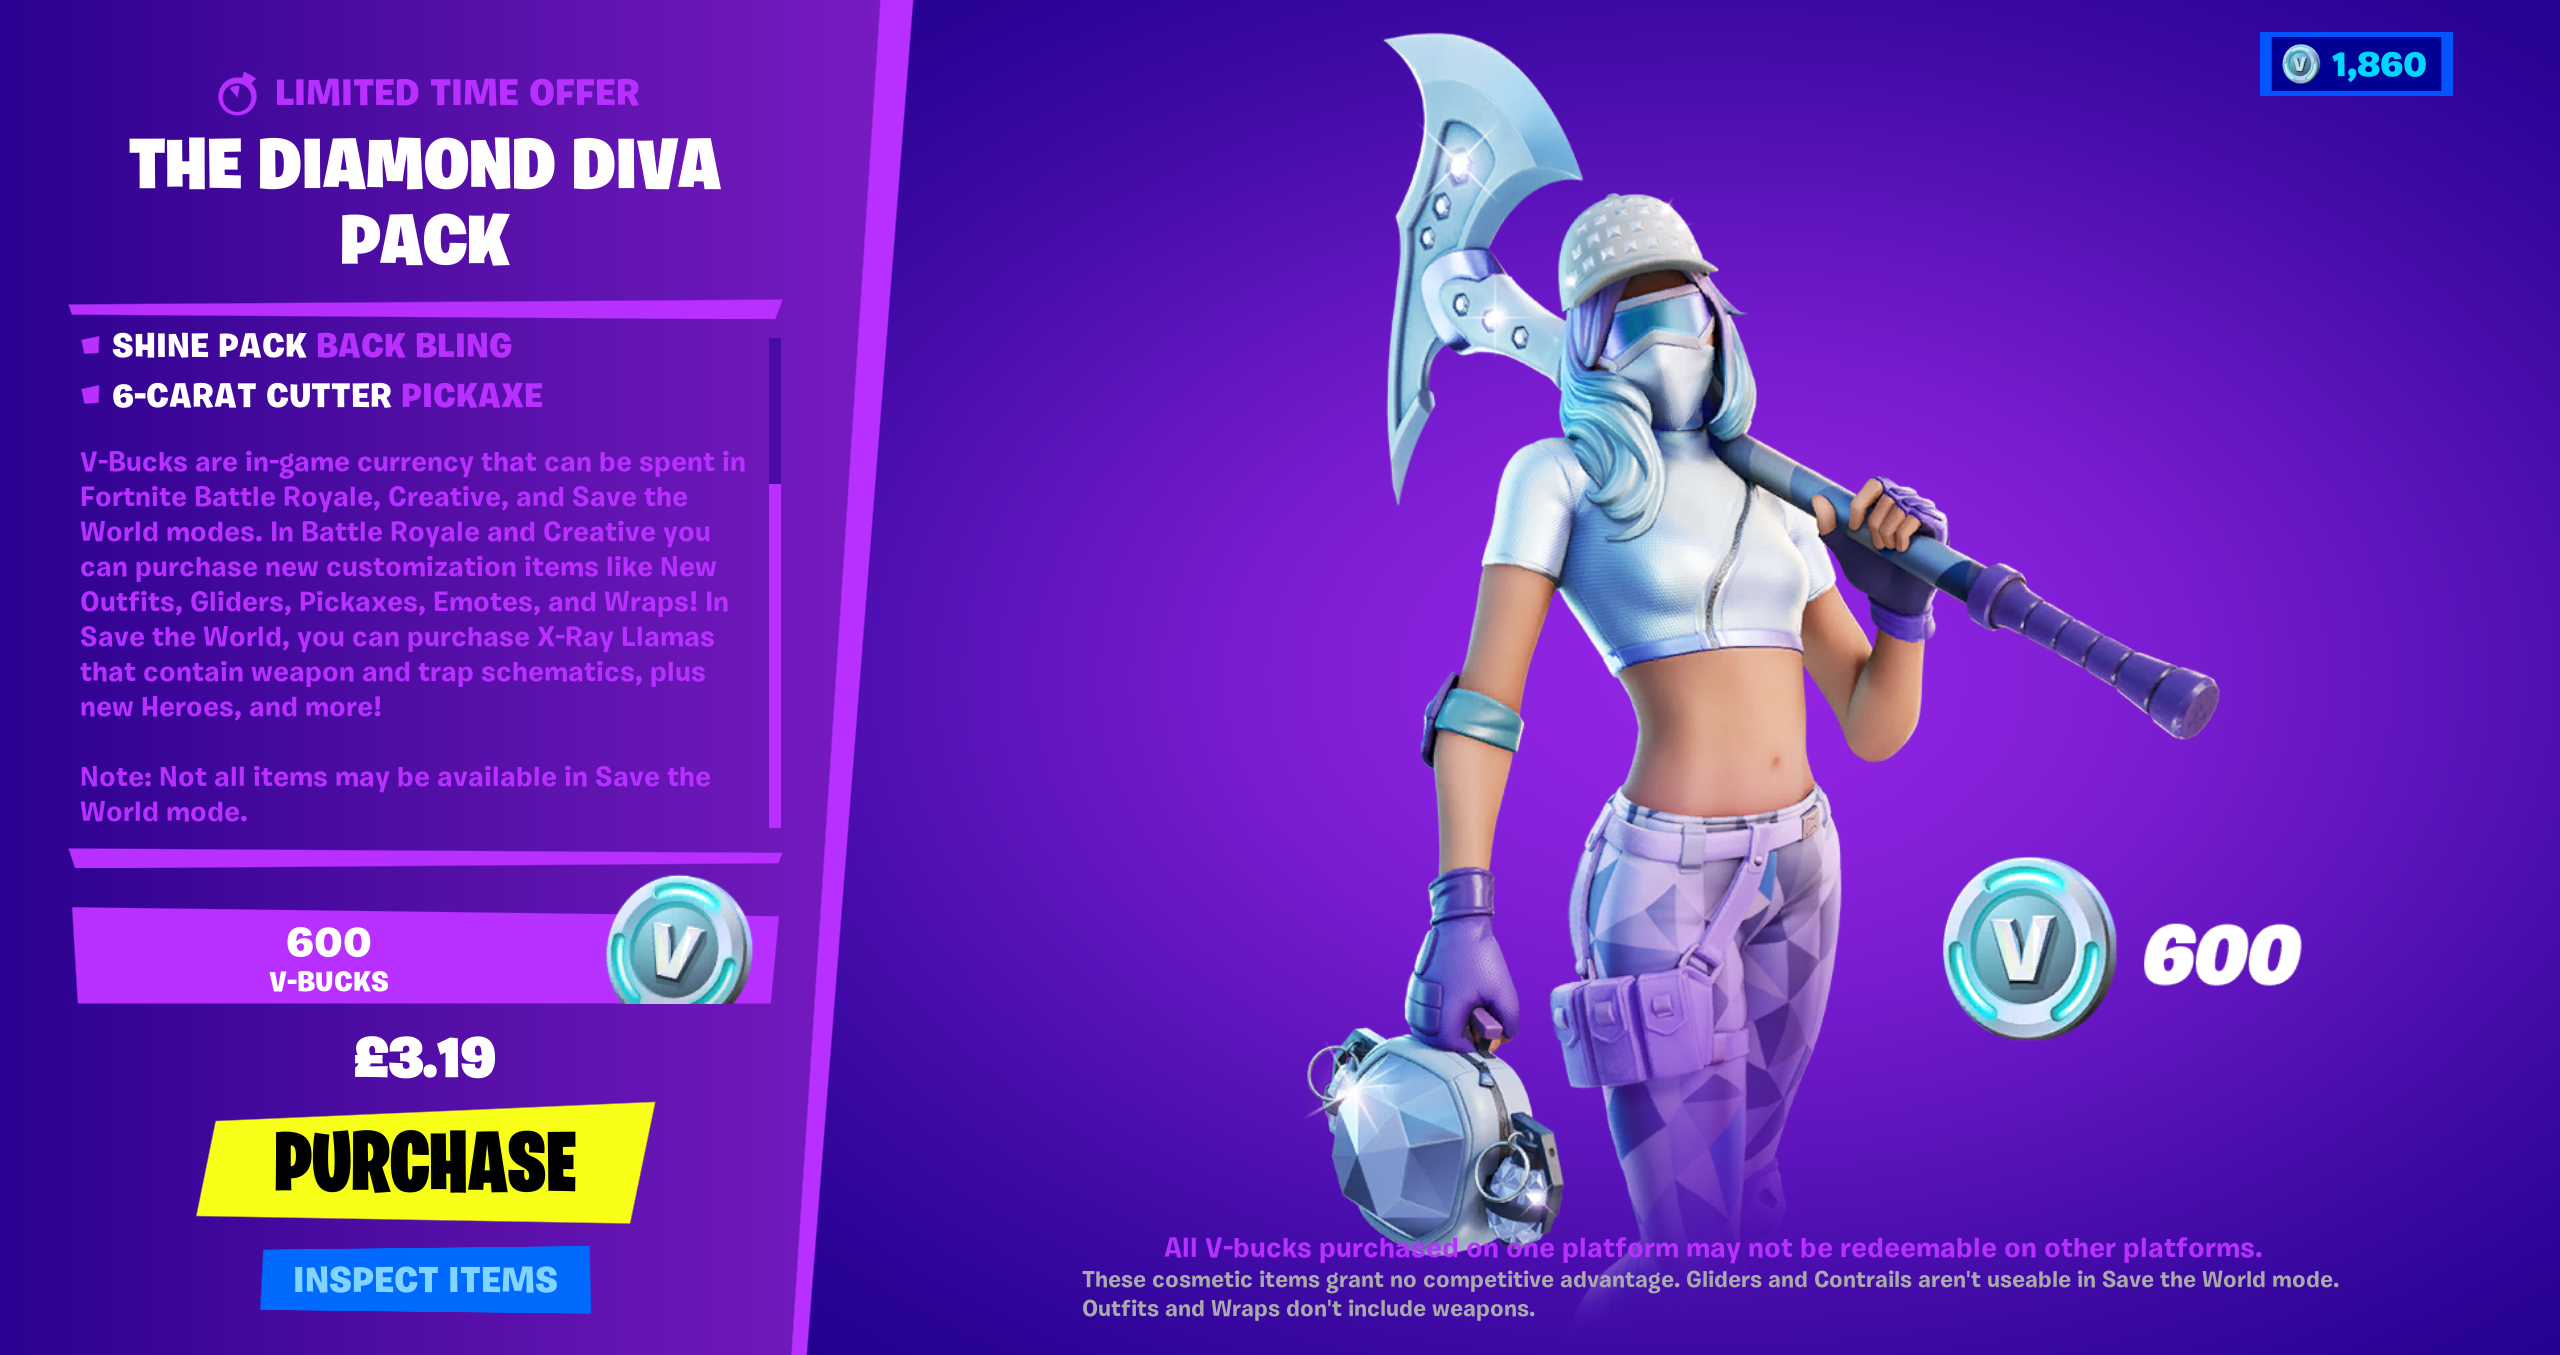 How To Inspect Your Weapon On Fortnite The Diamond Diva Pack Is Now Available Worldwide